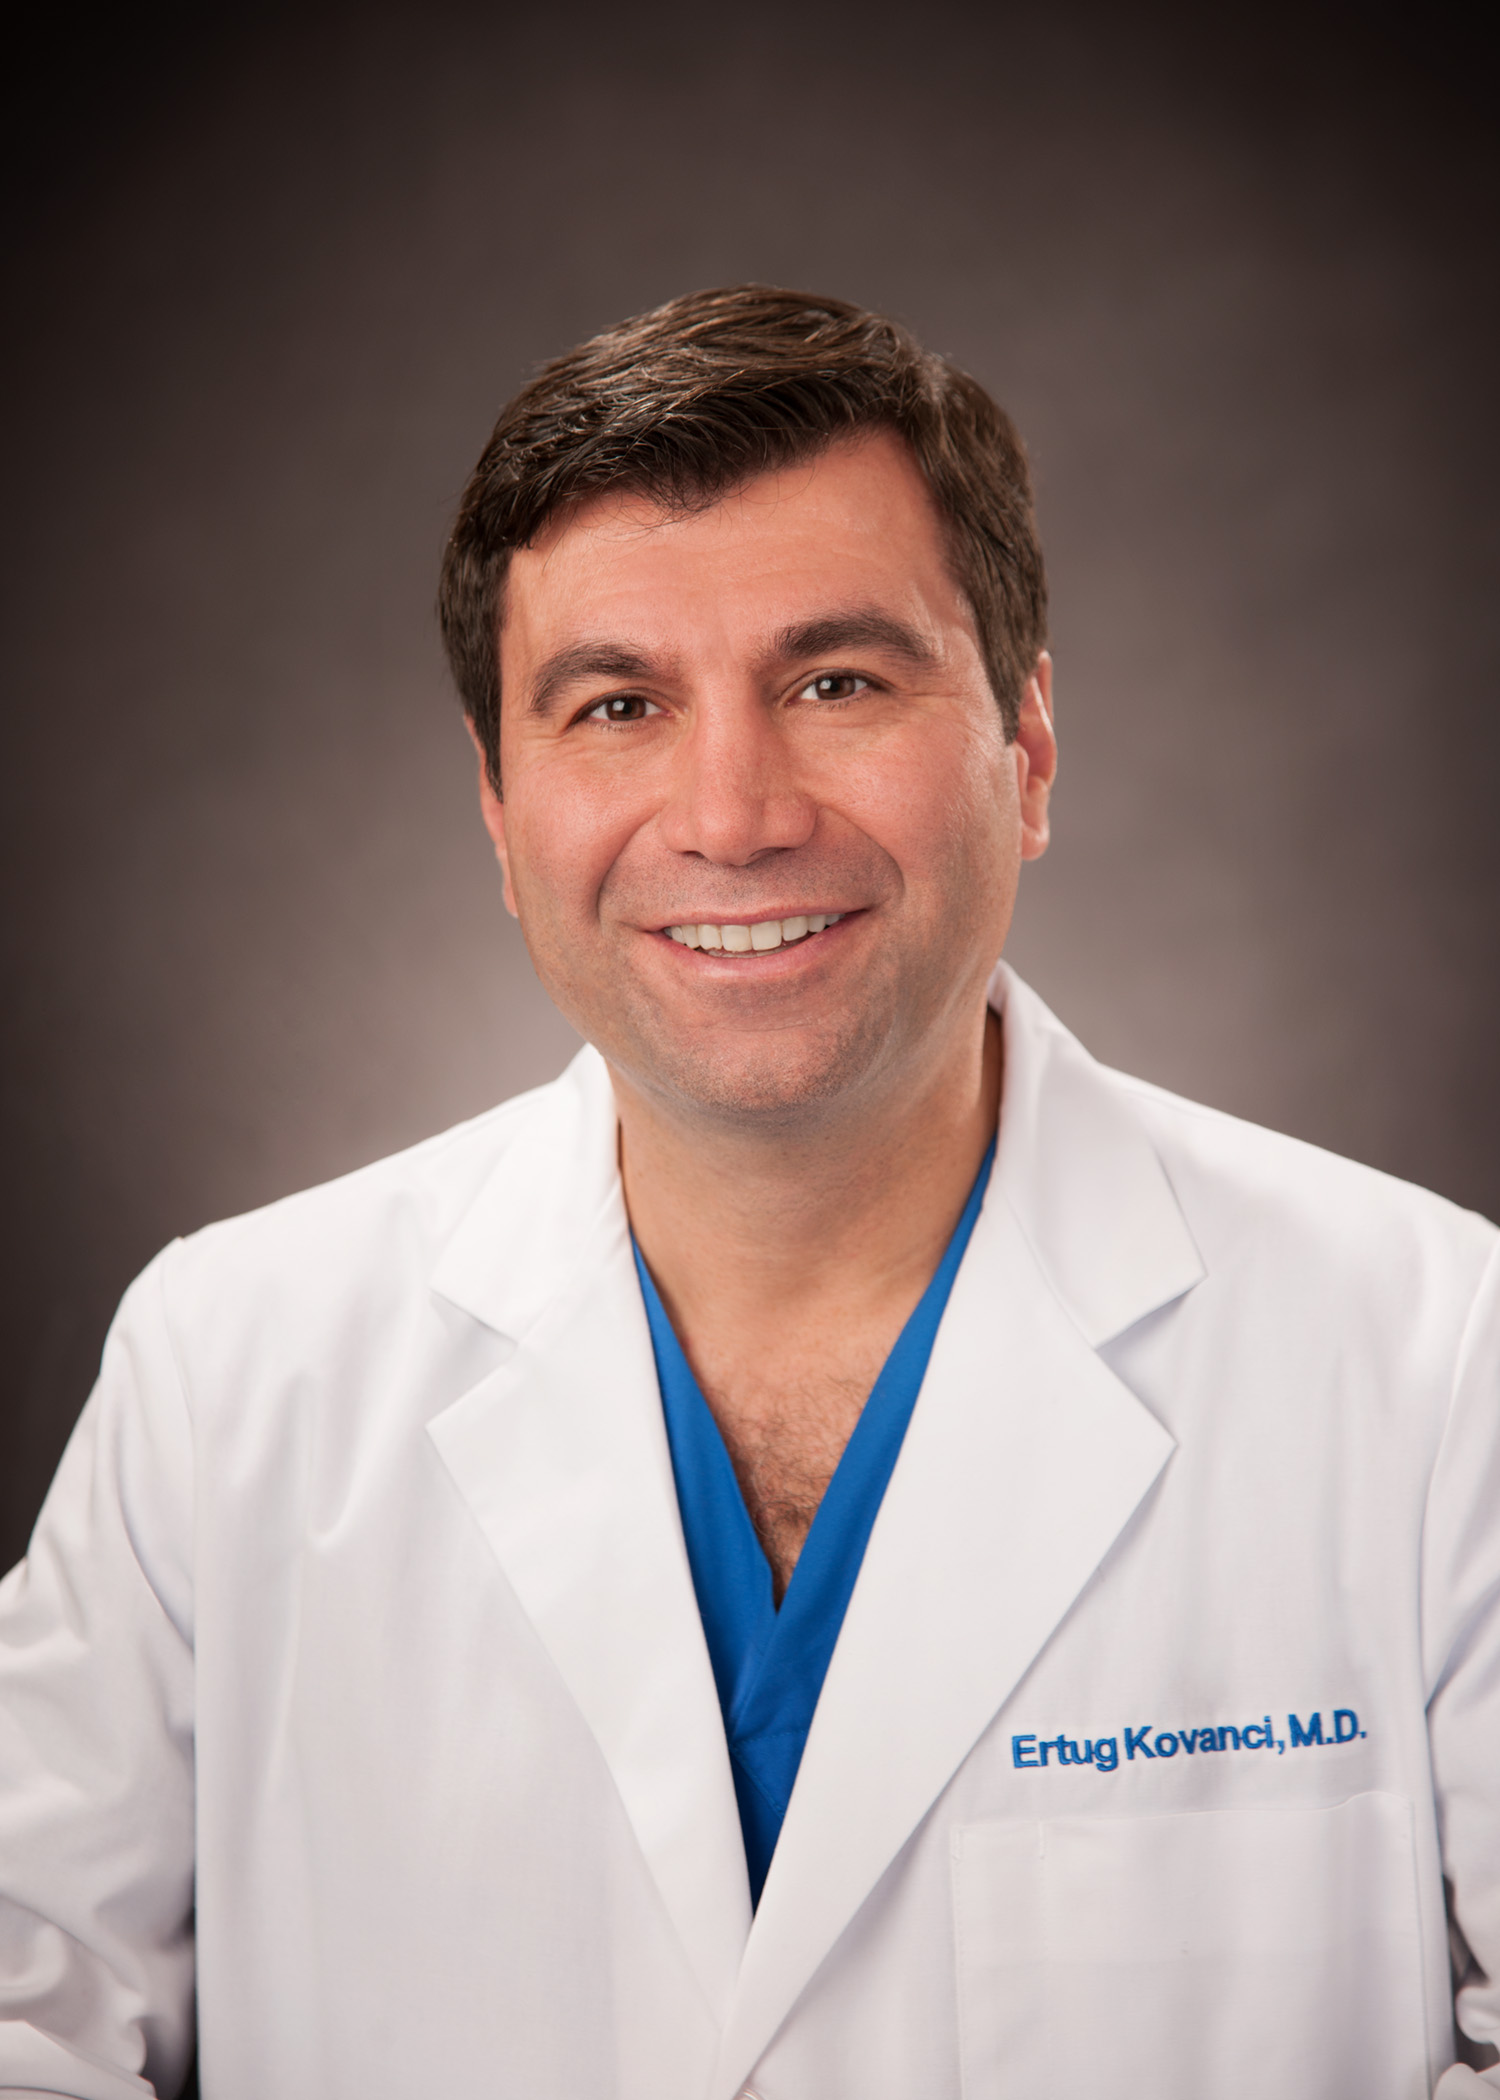 Ertug Kovanci, MD